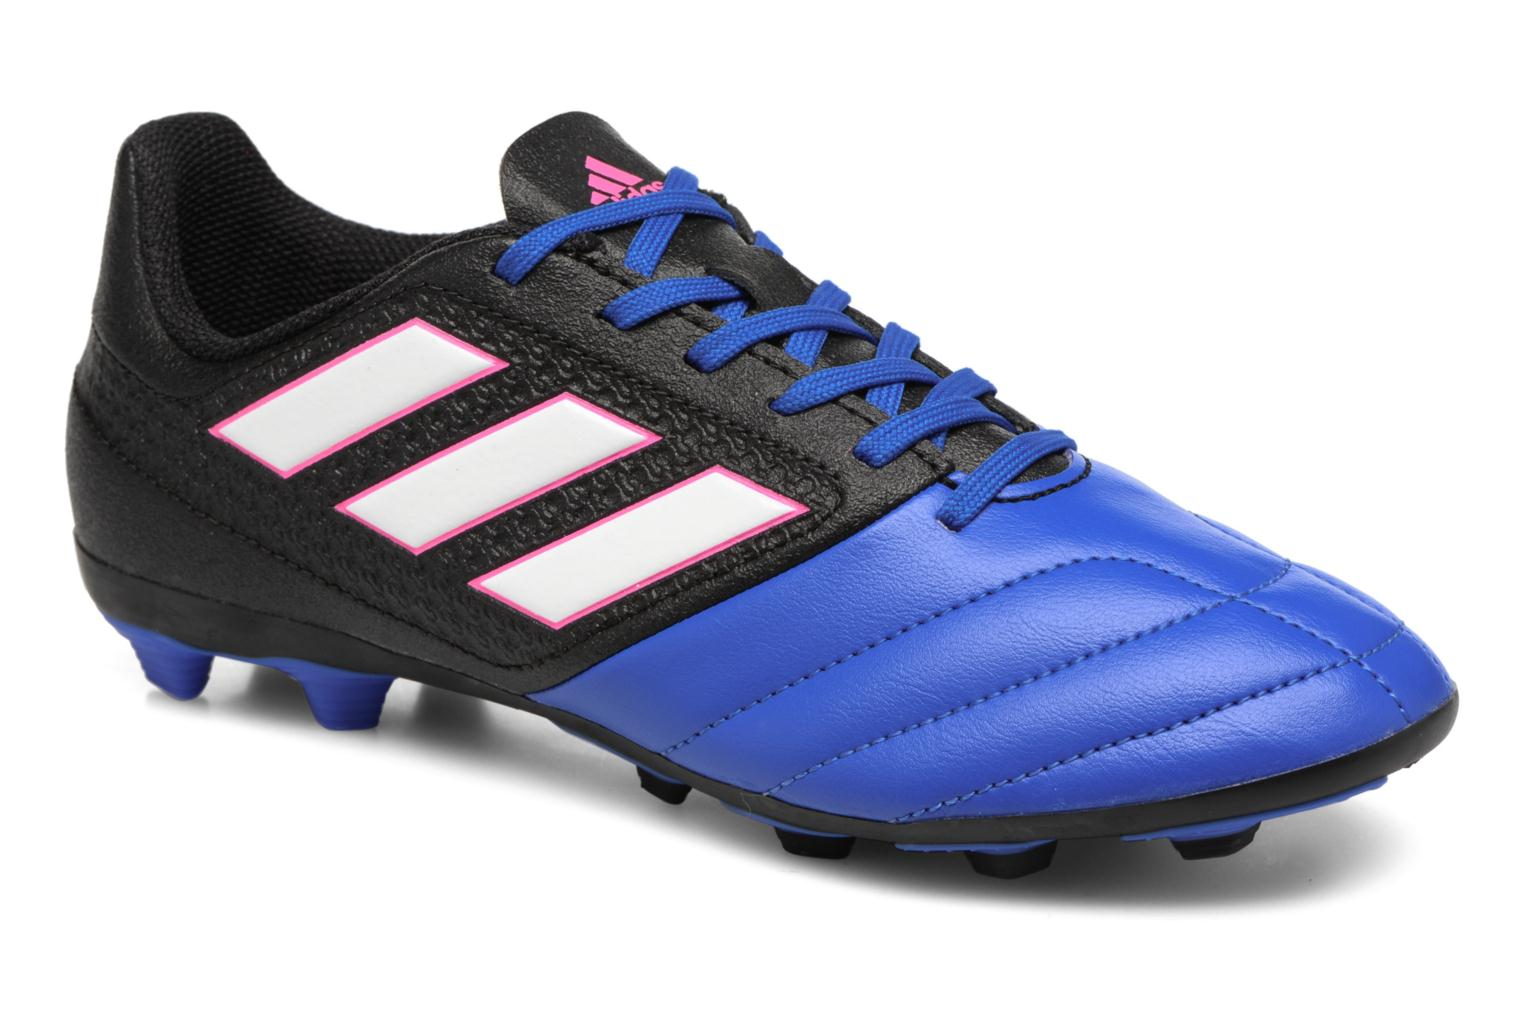 Ace 17.4 Fxg J by Adidas Performance